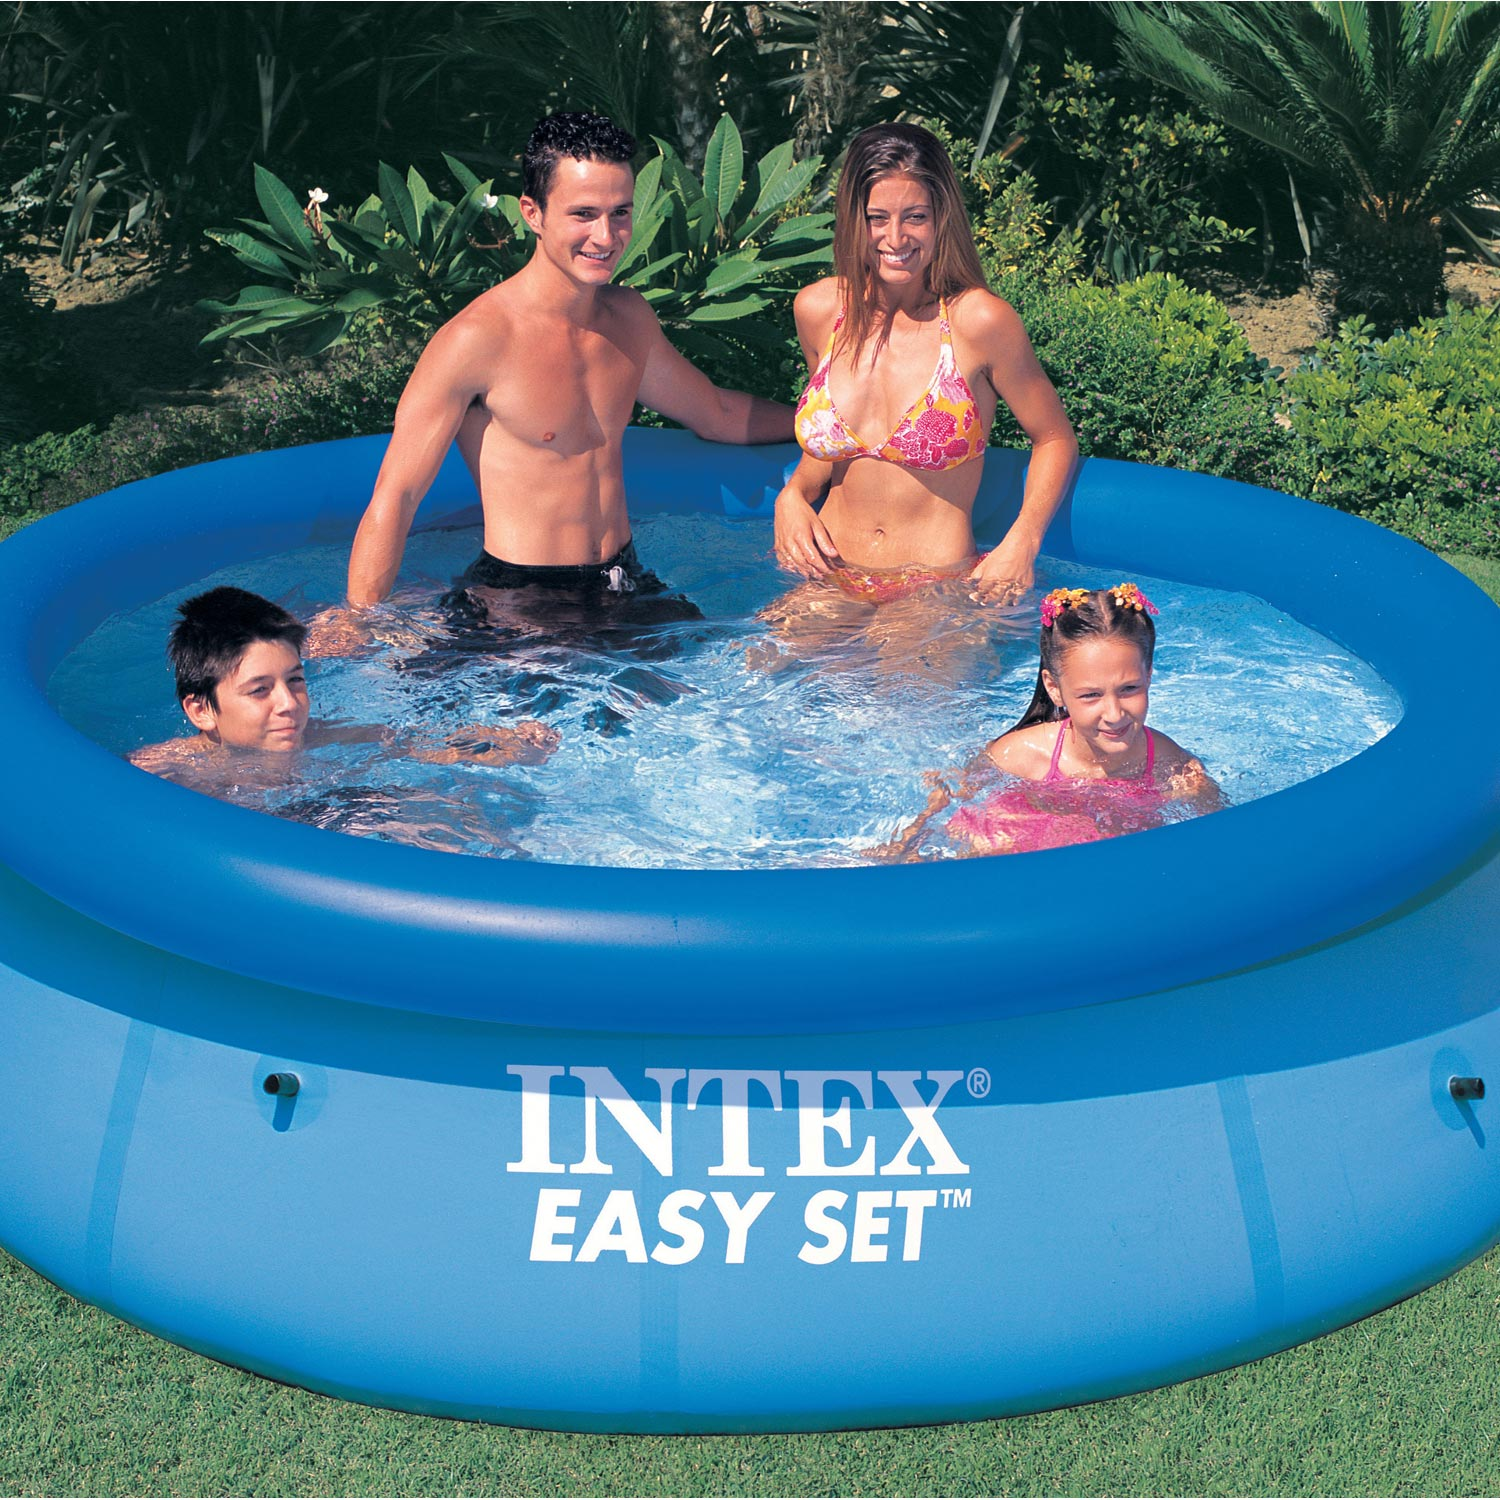 Piscine hors sol gonflable easy set clearview intex ronde diam lero - Sel piscine leroy merlin ...